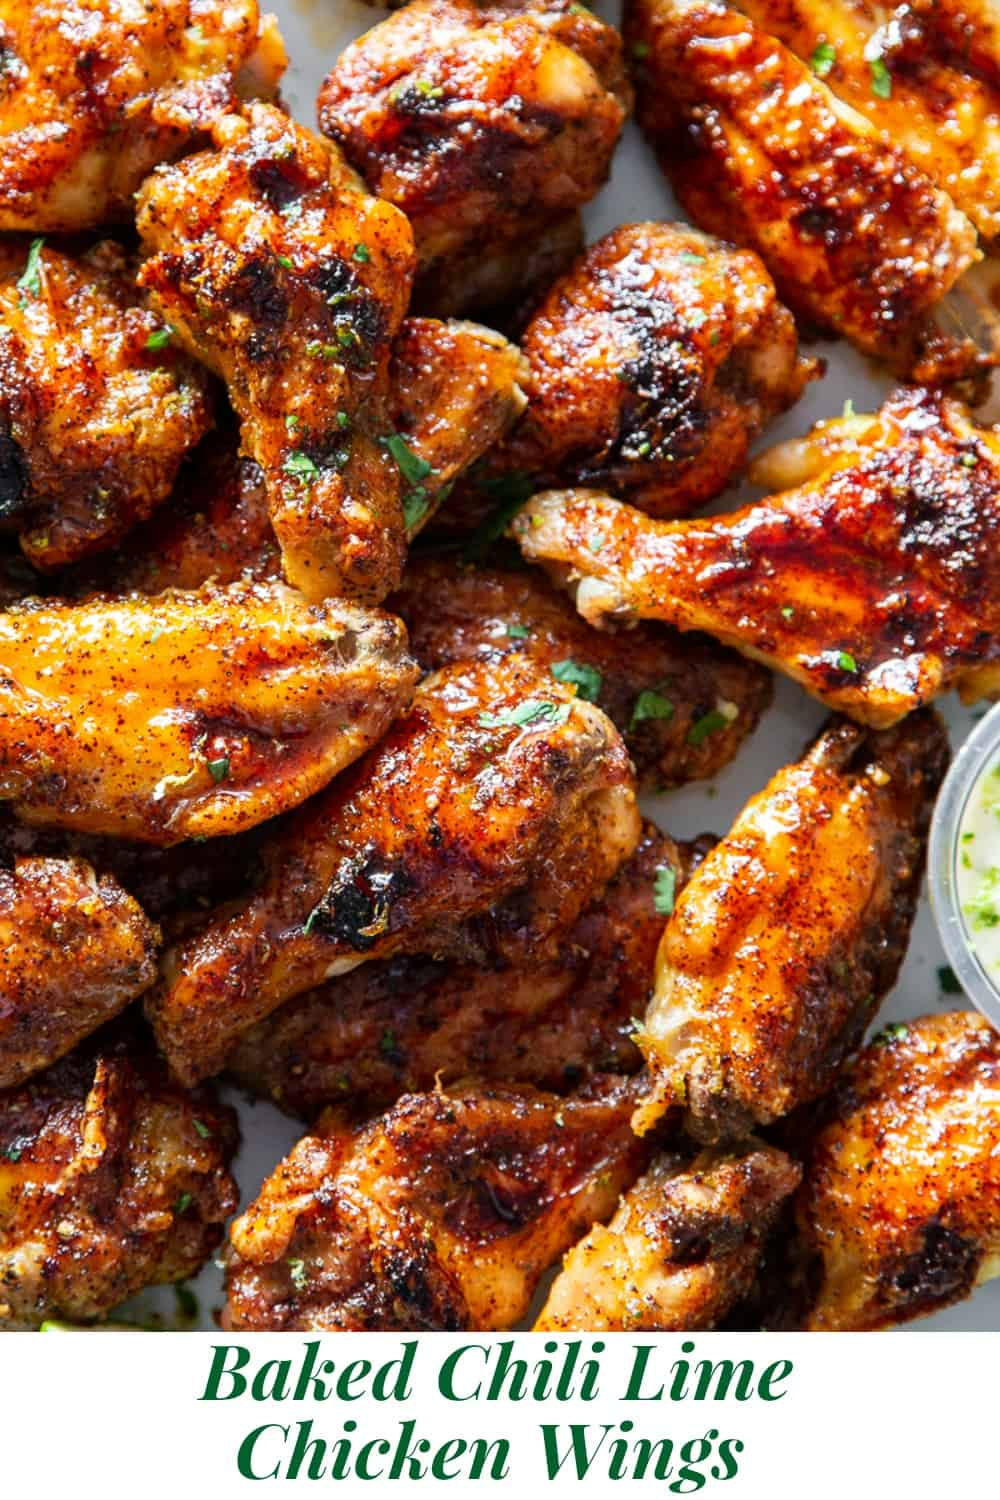 These sweet and spicy chili lime chicken wings are packed with flavor and perfect for parties, appetizers or a fun dinner!  These crispy baked chicken wings are paleo with a Whole30 option to sweeten the sauce, family friendly and a total crowd pleaser. #Paleo #cleaneating #wings #whole30 #superbowl